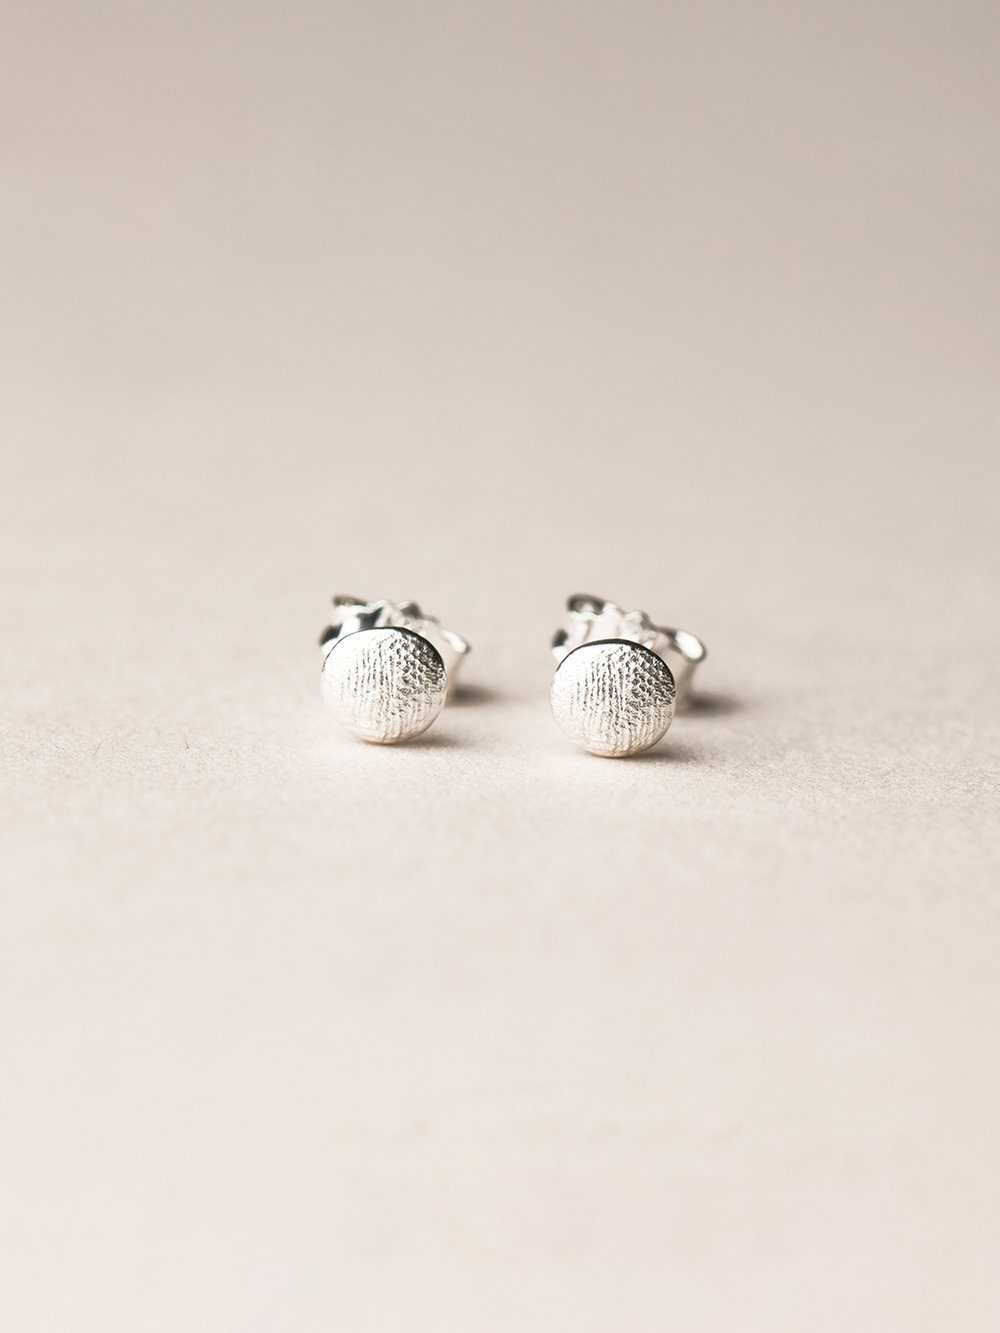 Runde Amia-Ohrstecker in 925 Silber  Amia, stud earrings in sterling silver